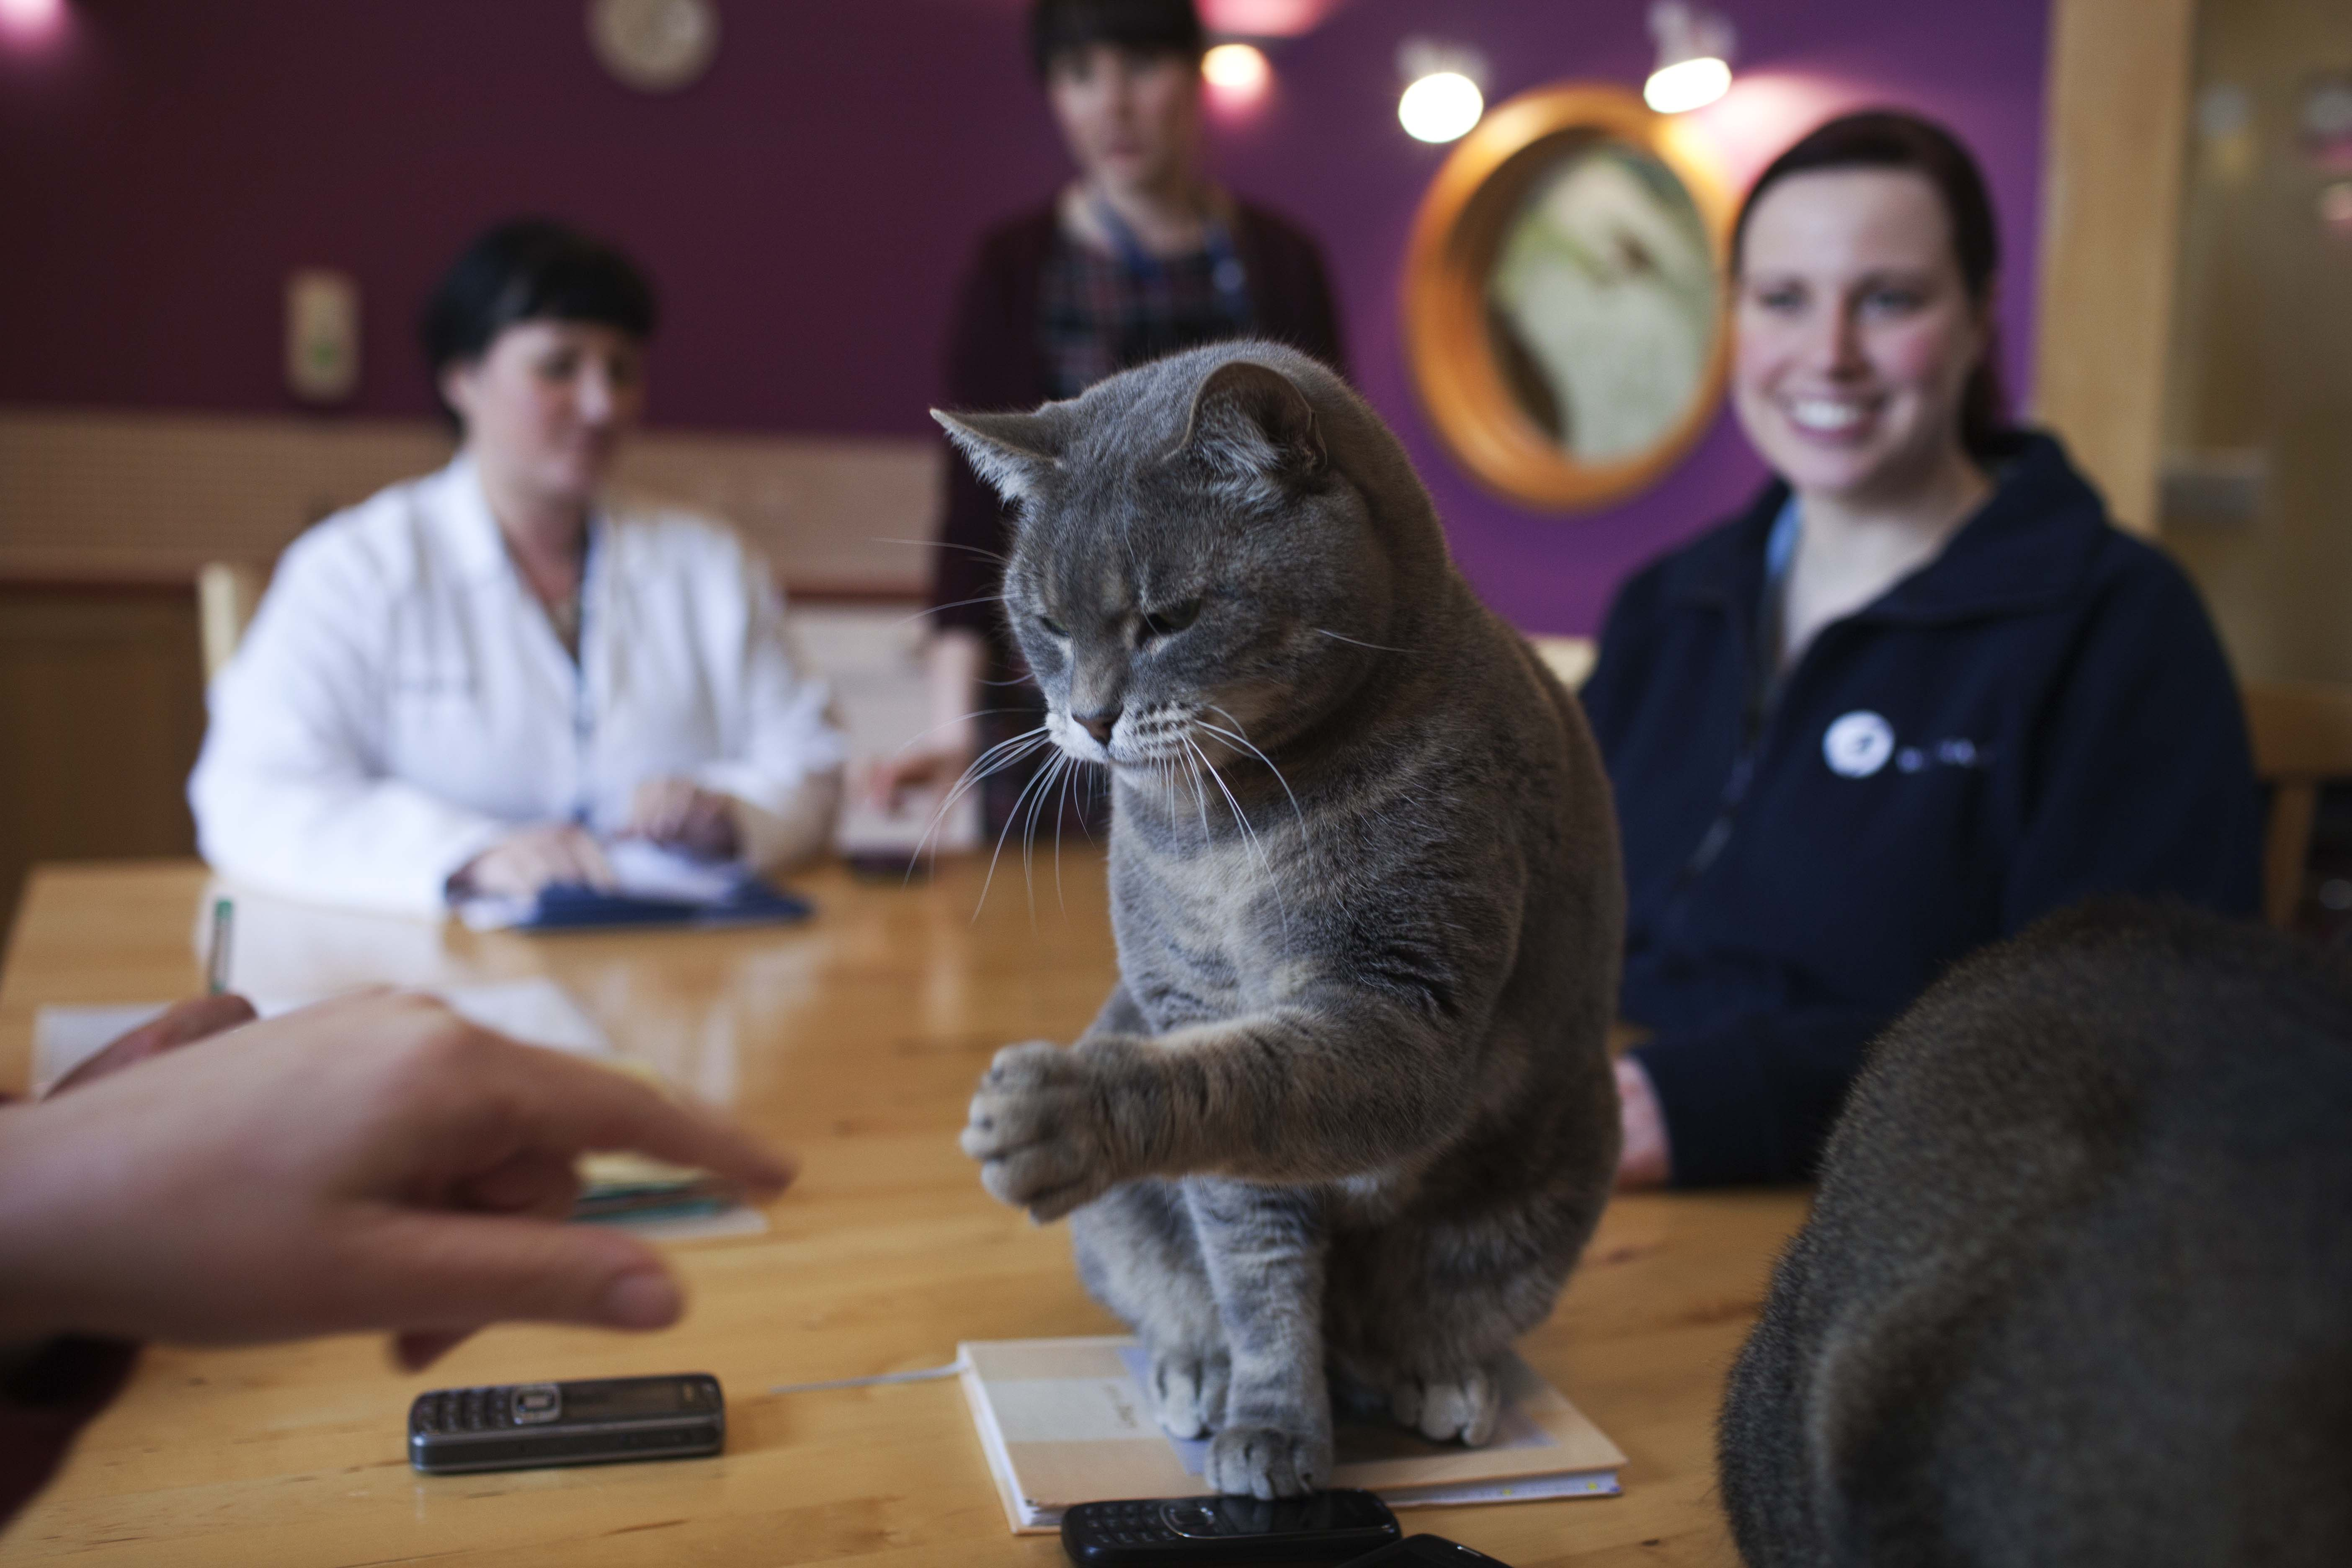 Employees at Mars are welcome to bring their pets to work.